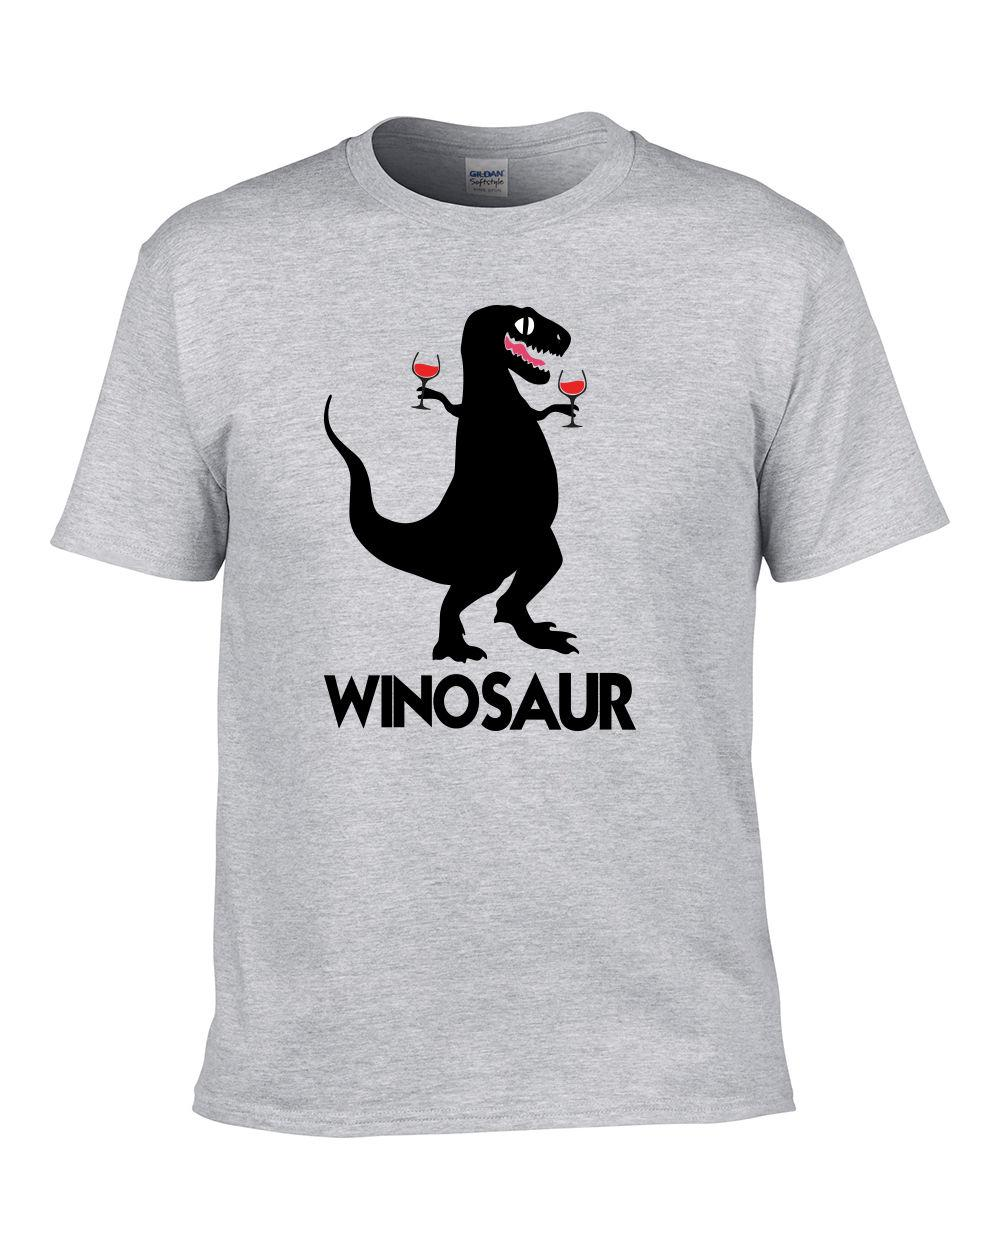 0d9959f4 Winosaur Dinosaur Wine T Rex Funny Illustration Mum Gift Mothers Father T  Shirt Funny Vintage T Shirts T Shirts From Pretty070, $11.63| DHgate.Com